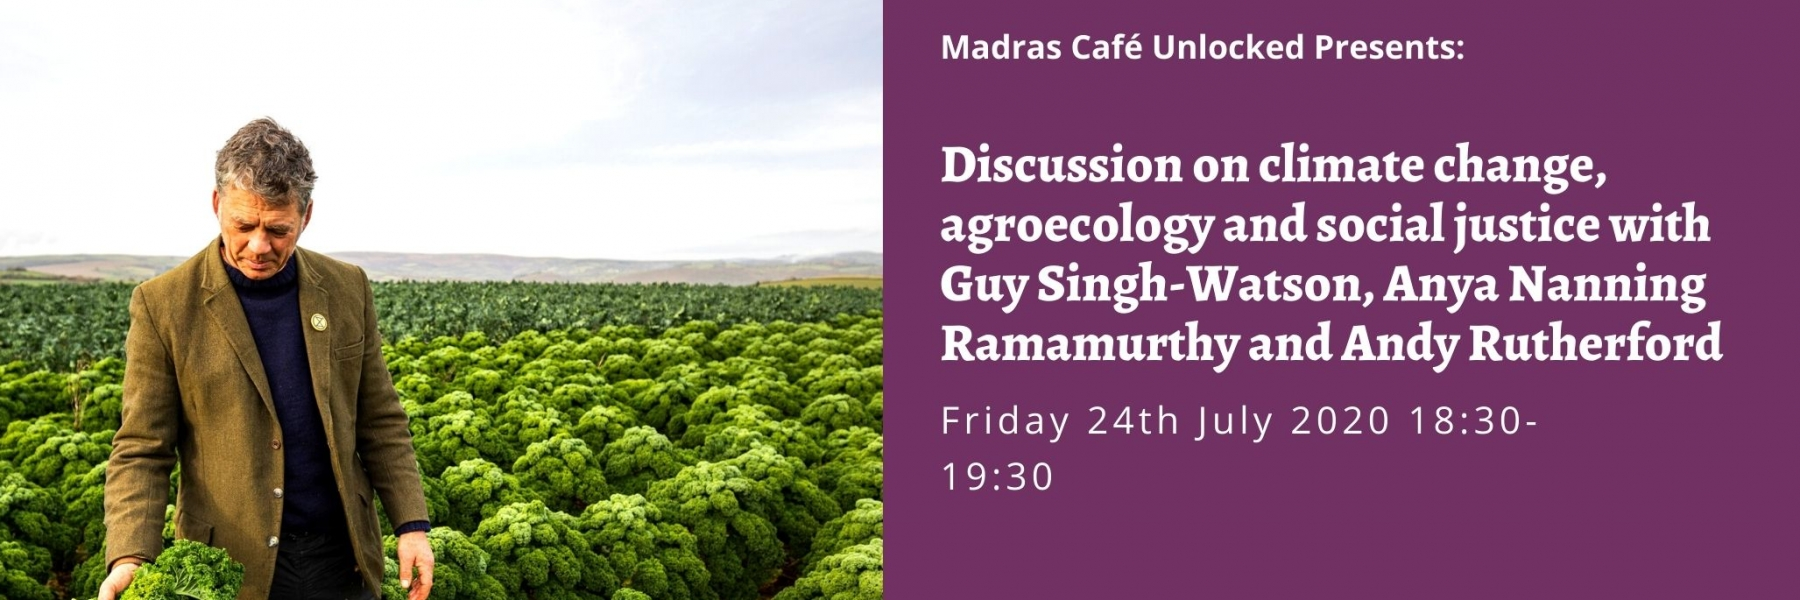 Madras Cafe Unlocked 2020: Discussion on Climate Change, agroecology and social justice